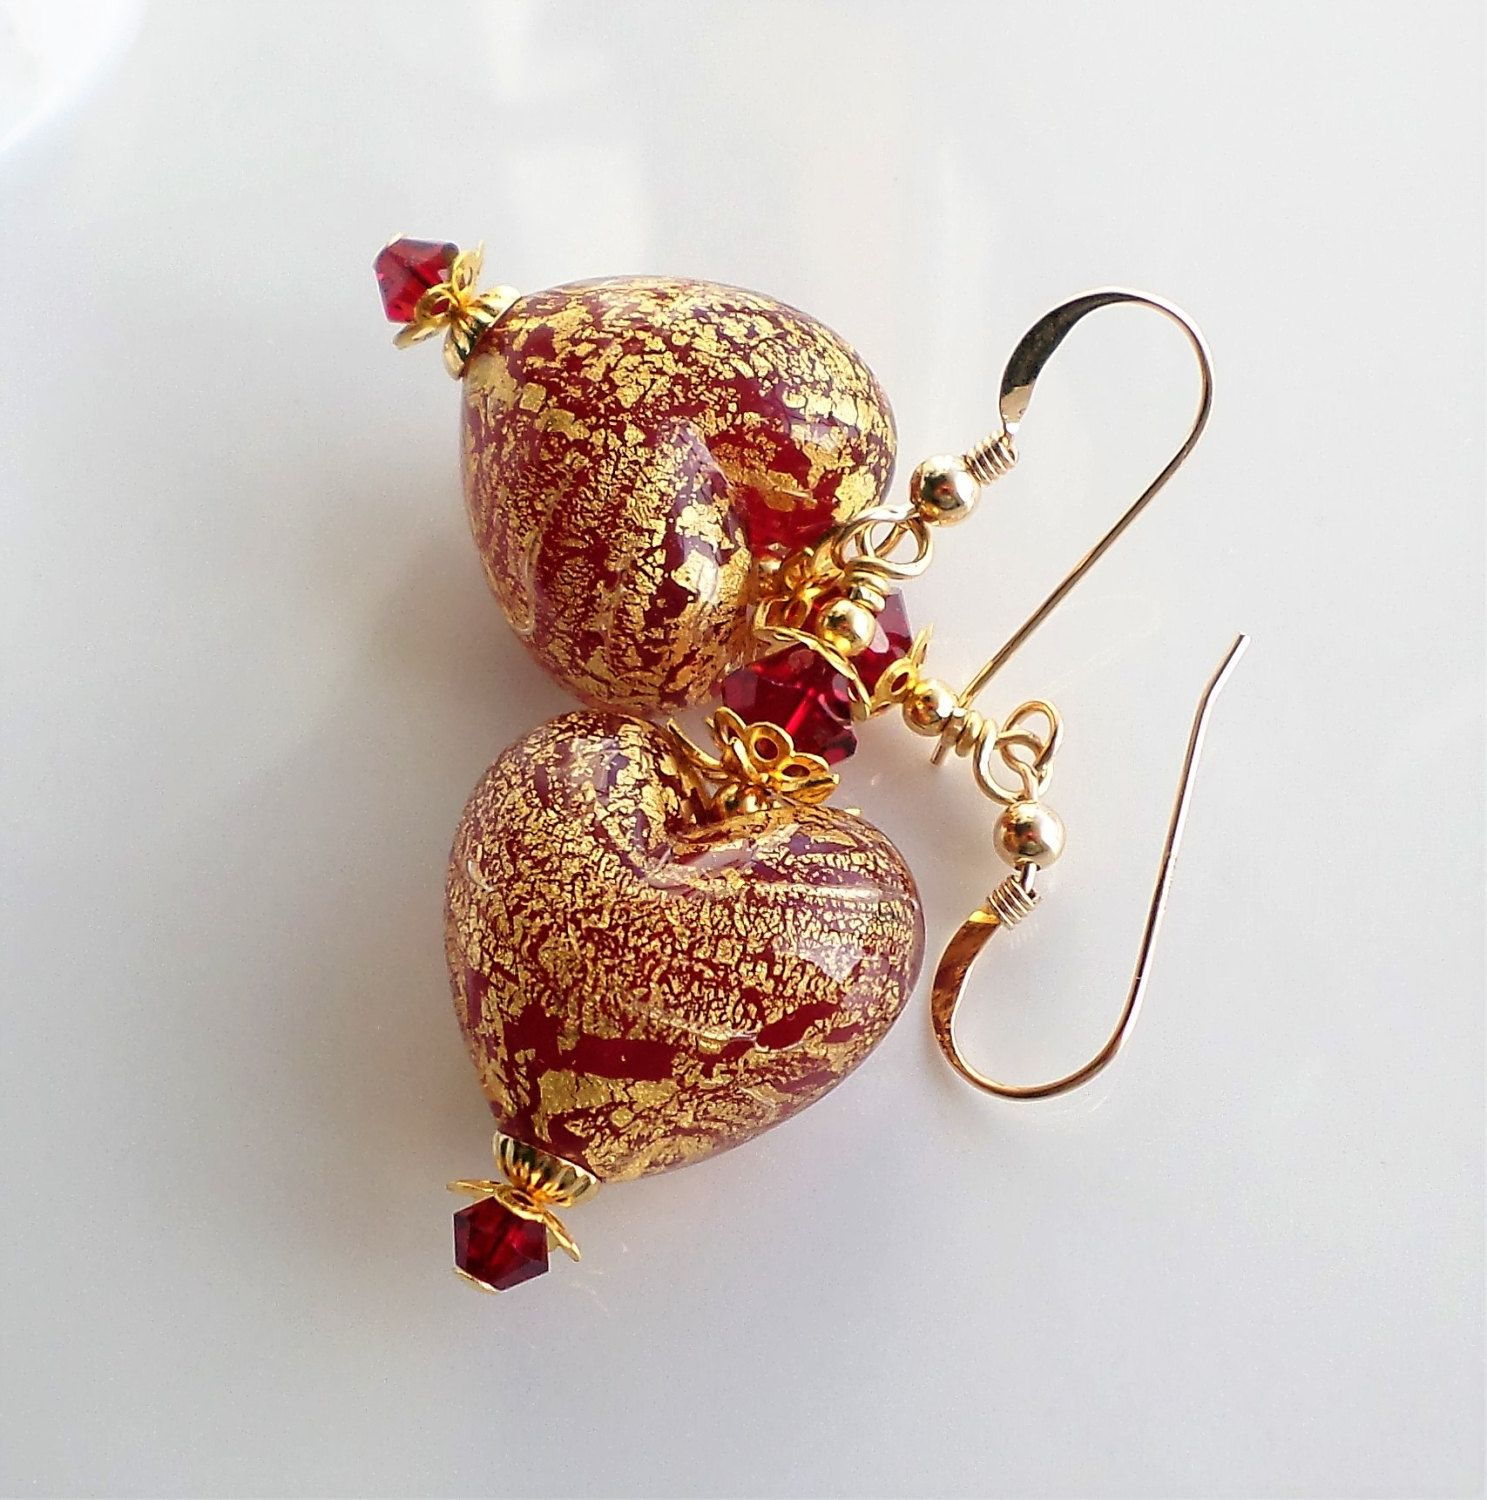 Large Red Heart Murano Venetian Gold Foil Glass Earrings, Red Venetian Heart  Earrings, 24kt Gold Foil Murano Glass Heart Drop Earrings